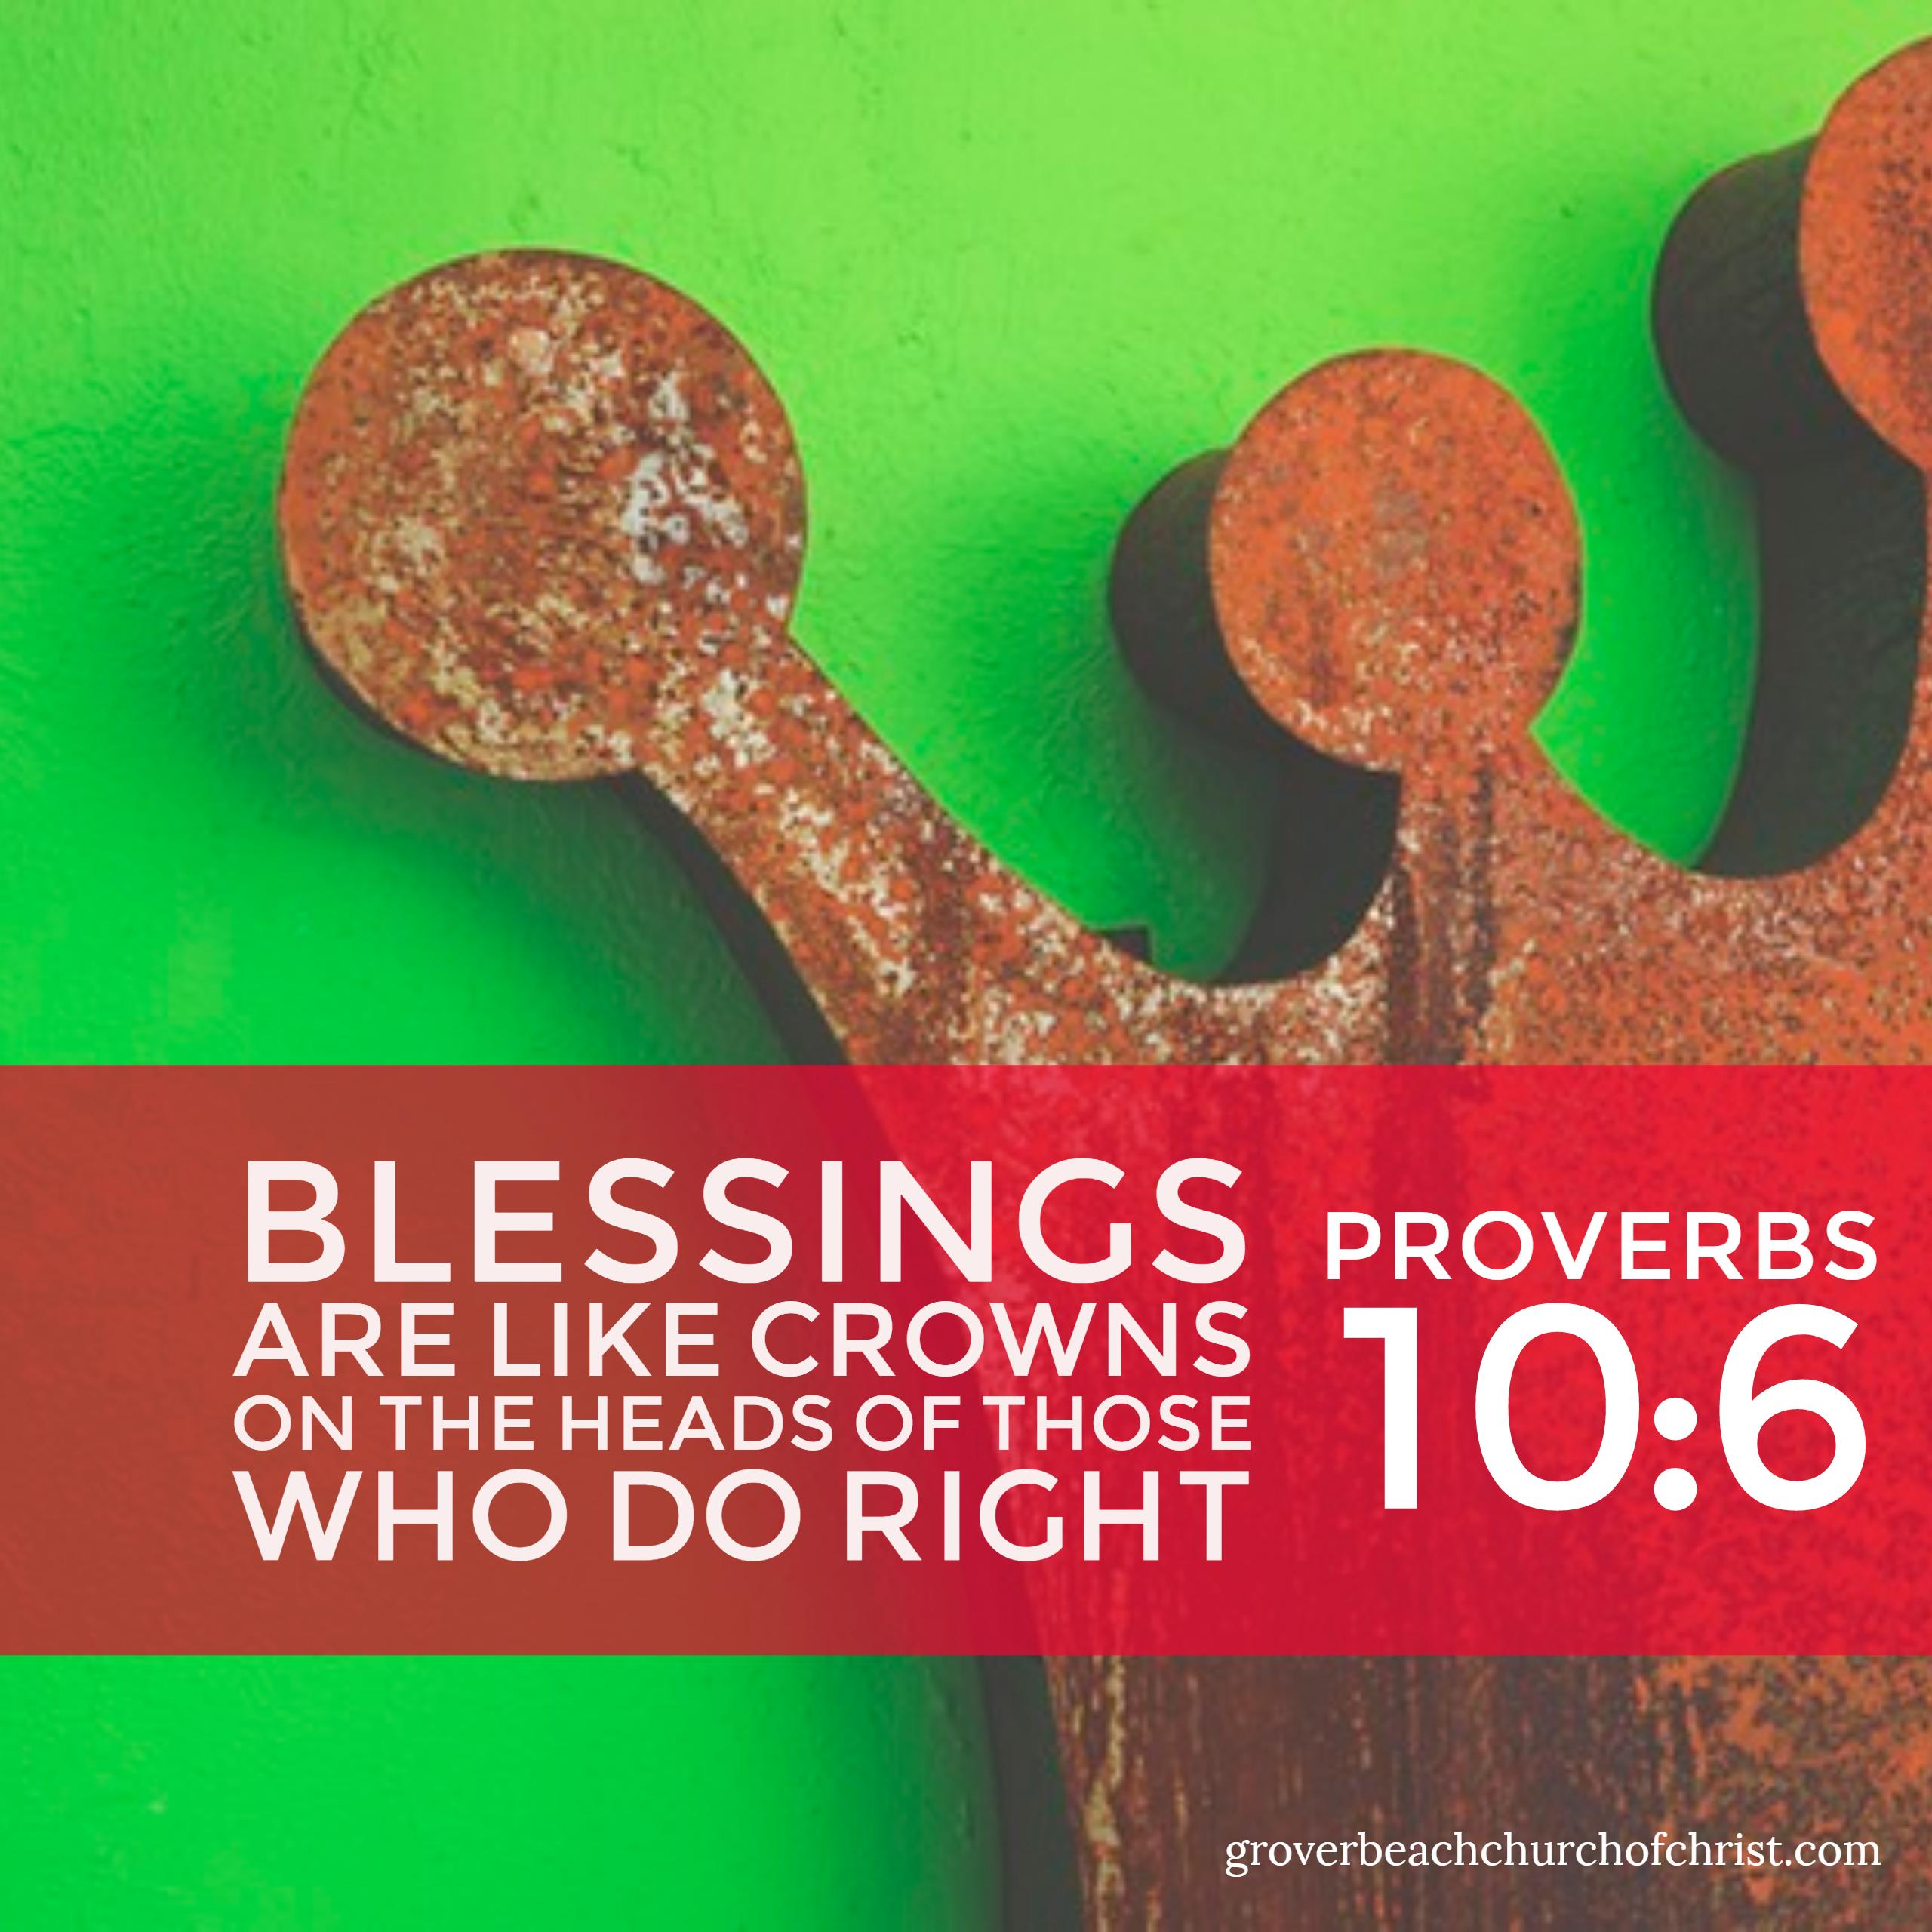 proverbs-10:6-blessings-are-like-crowns